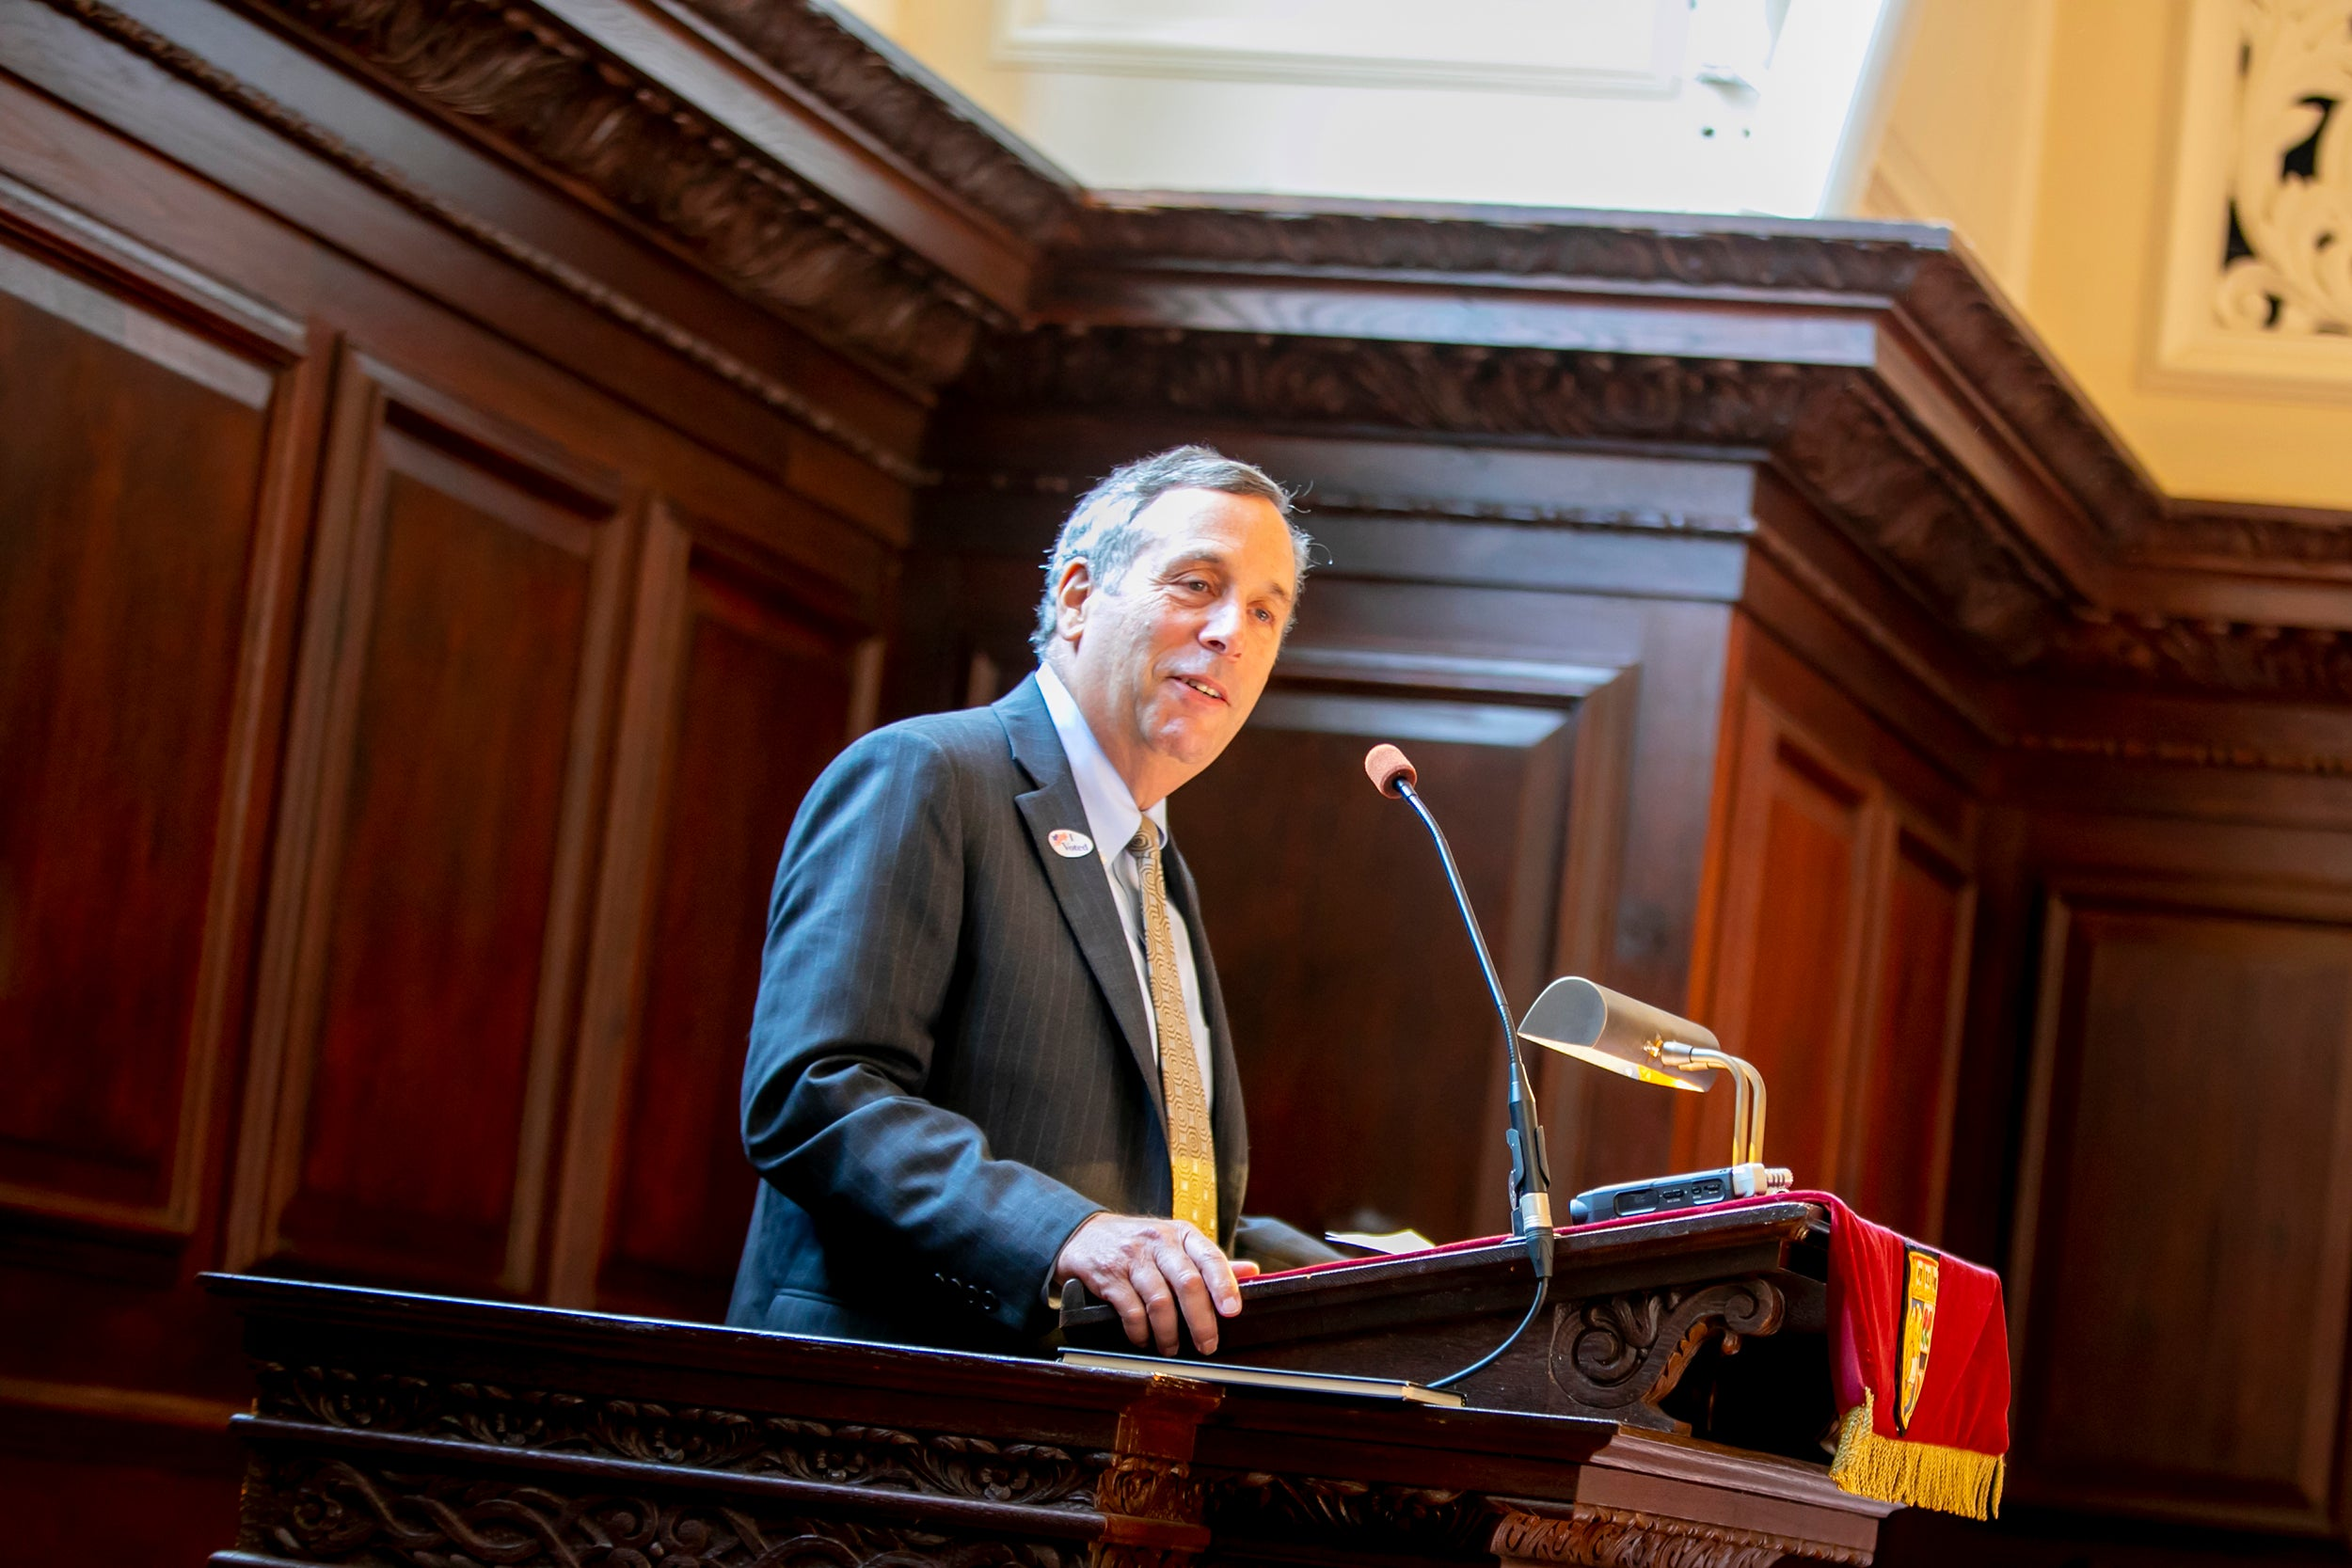 Contemplation and reflection were themes of Harvard President Larry Bacow's remarks at Morning Prayers at Memorial Church.